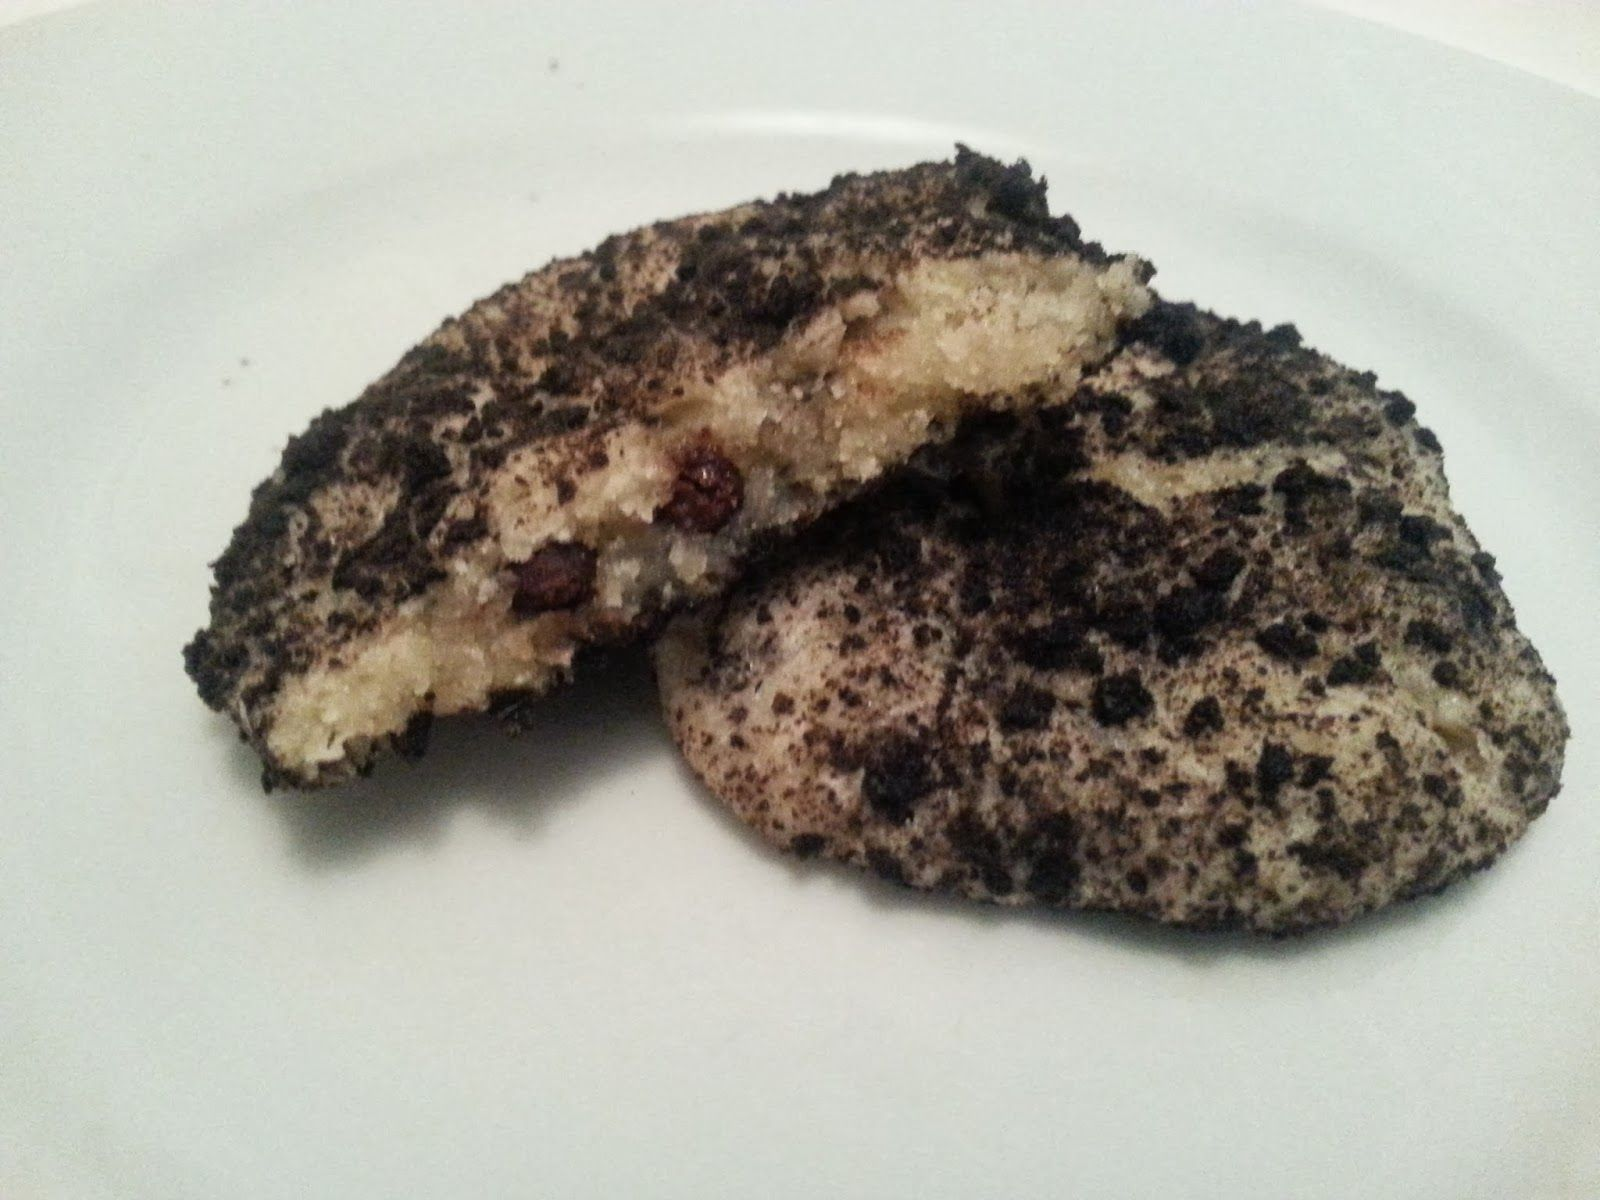 Veganeren: Oreo cheesecake cookies